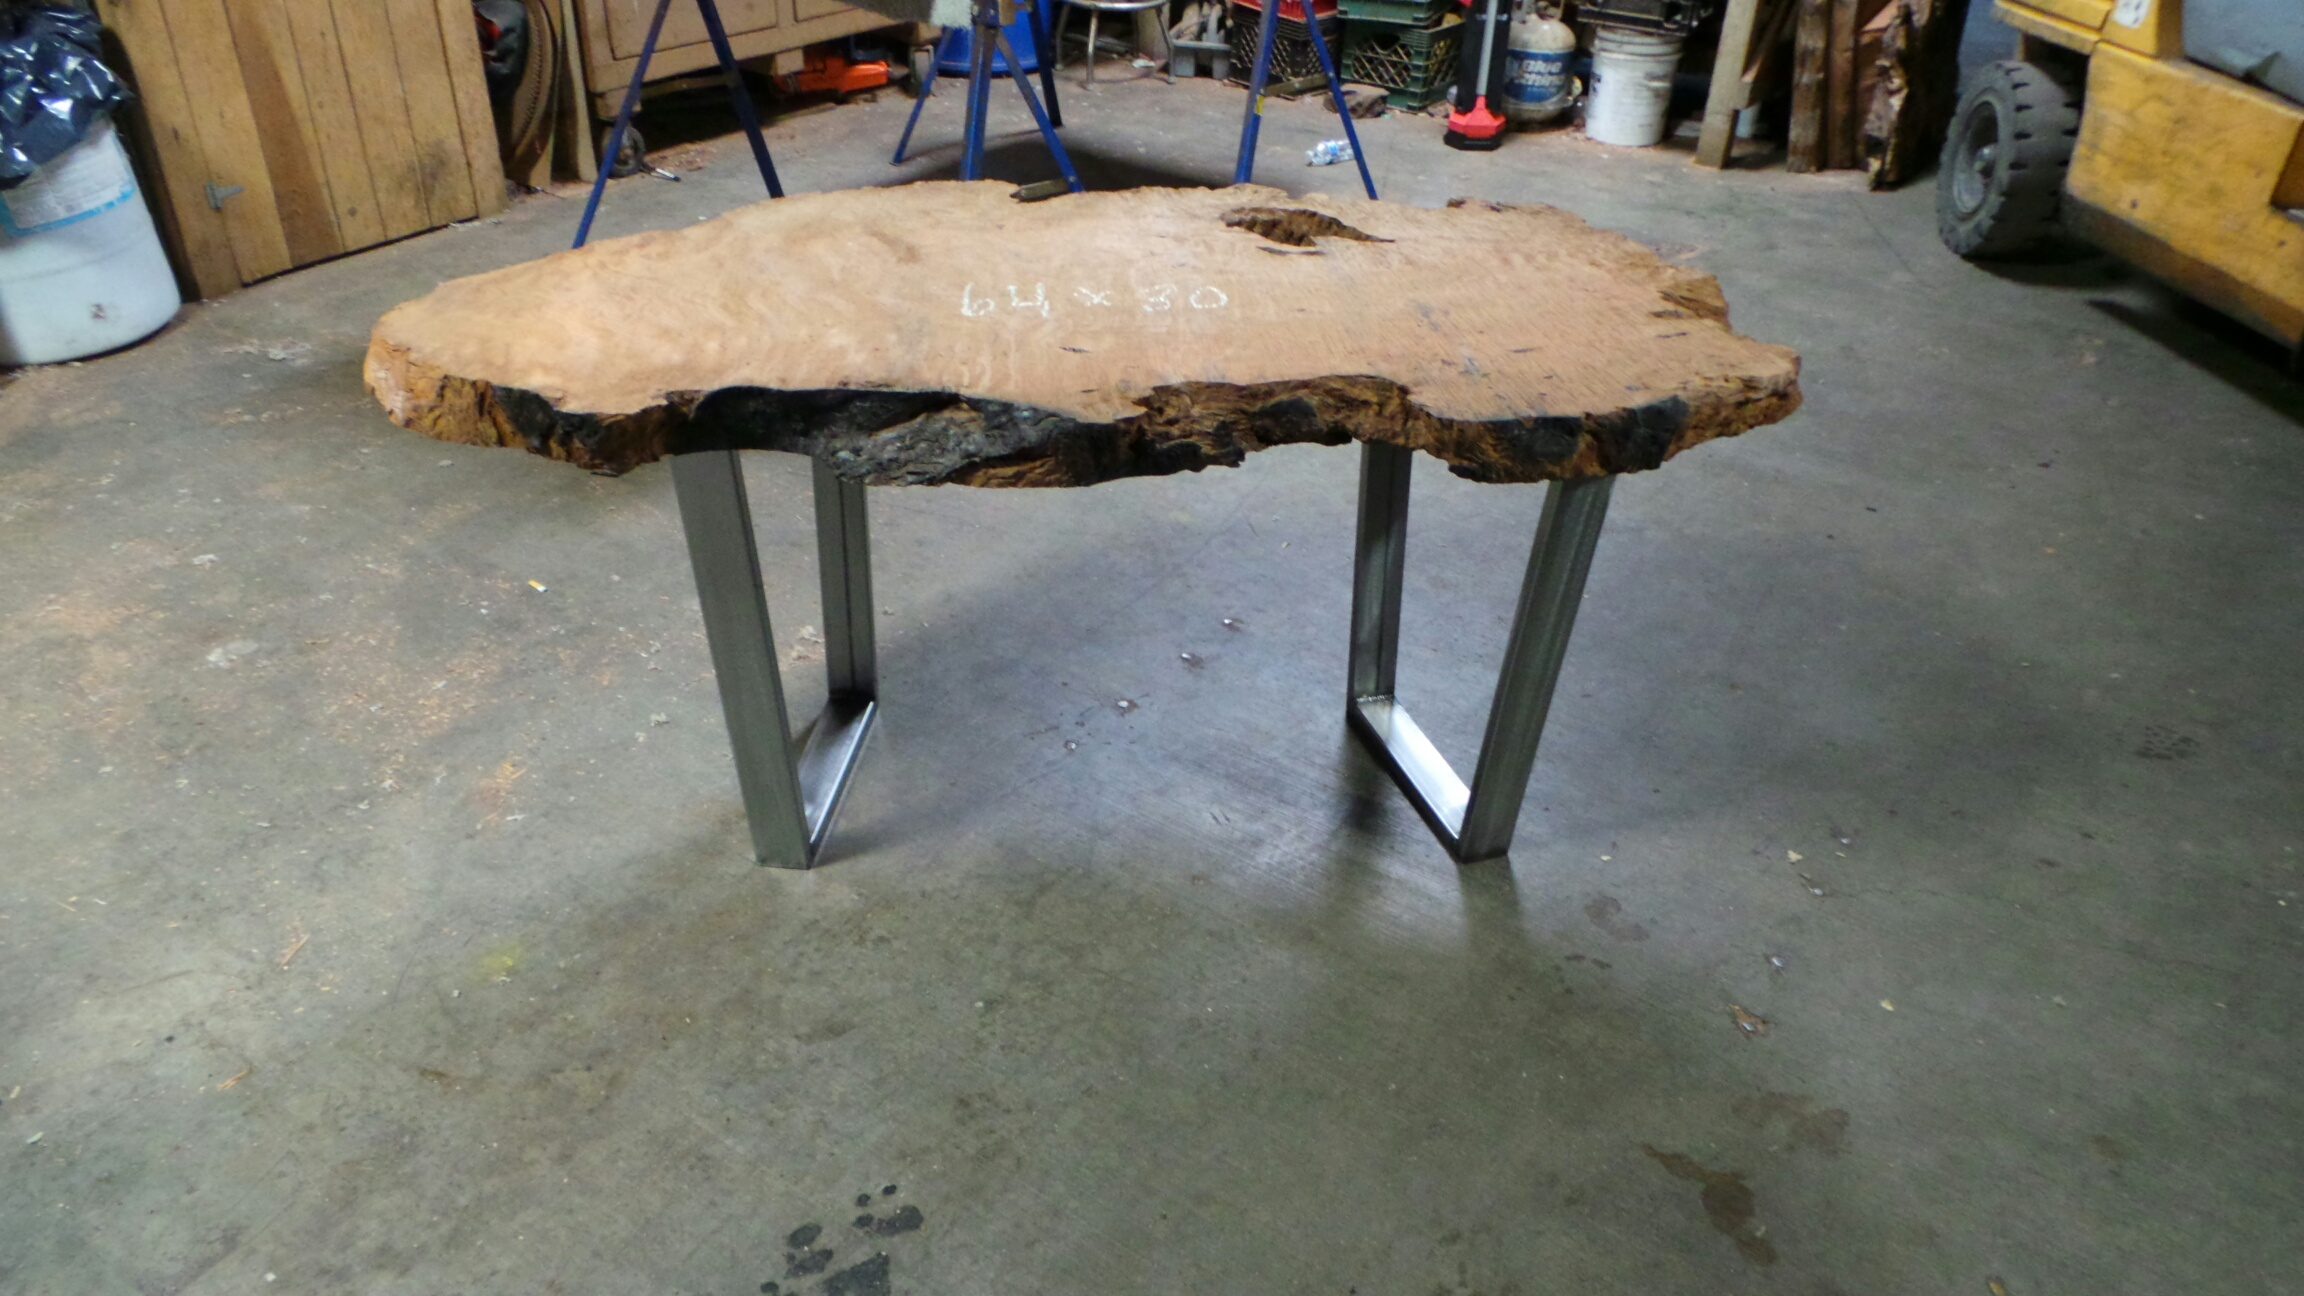 unfinished redwood table with standard metal legs (polished steel)